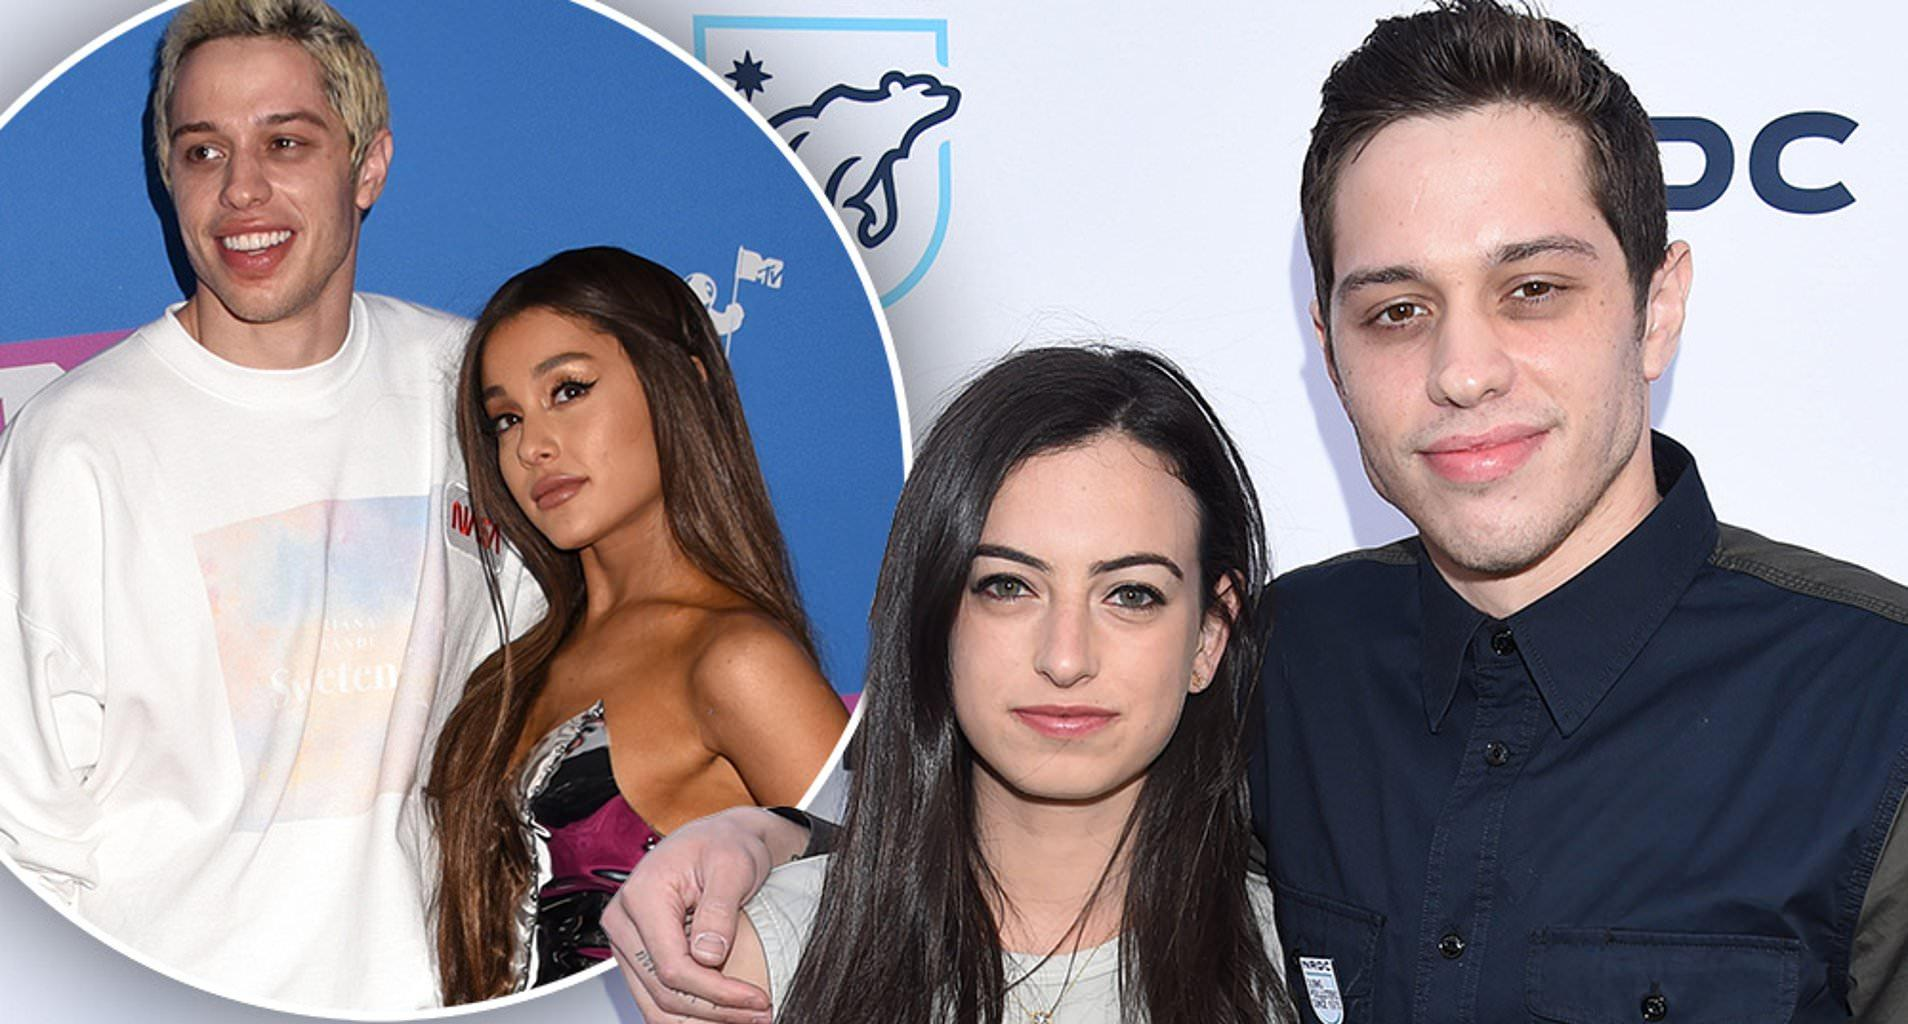 Pete Davidson's Ex Cazzie David Admits She 'Shook Uncontrollably' Upon Learning About His Romance With Ariana Grande After Dumping Her Via Text